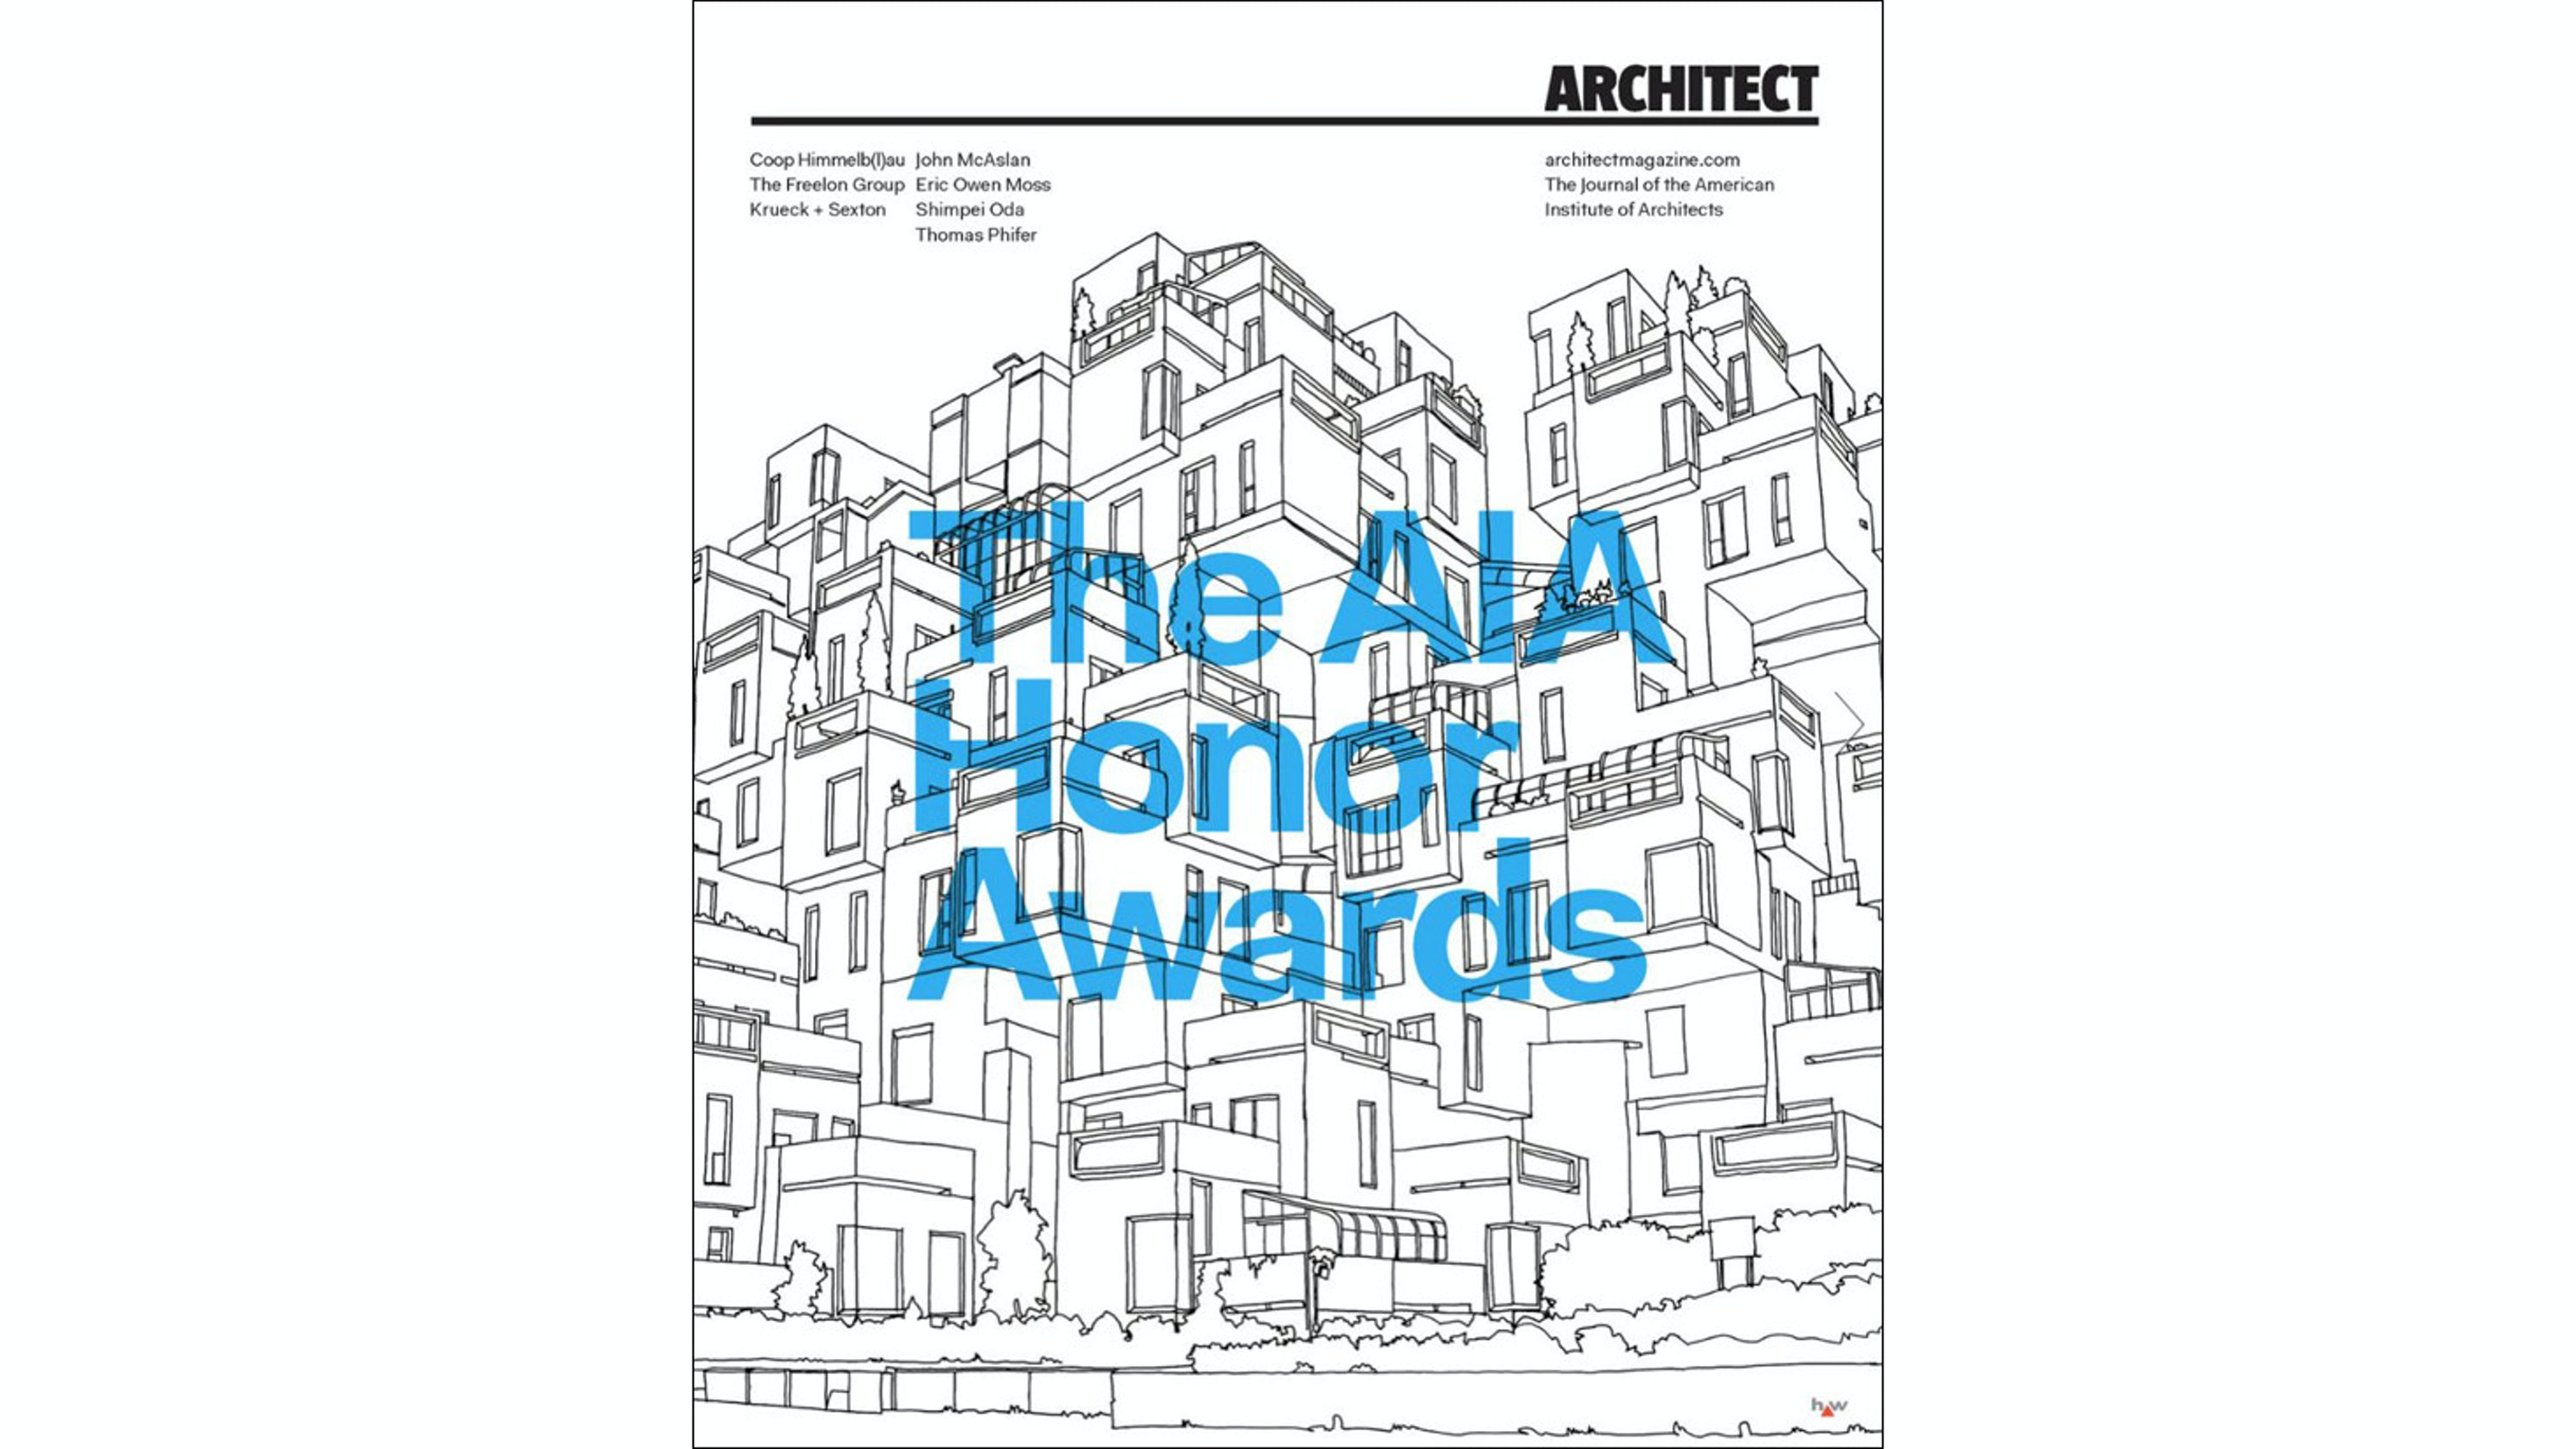 Architect Magazine: Federal Building Thumbnail